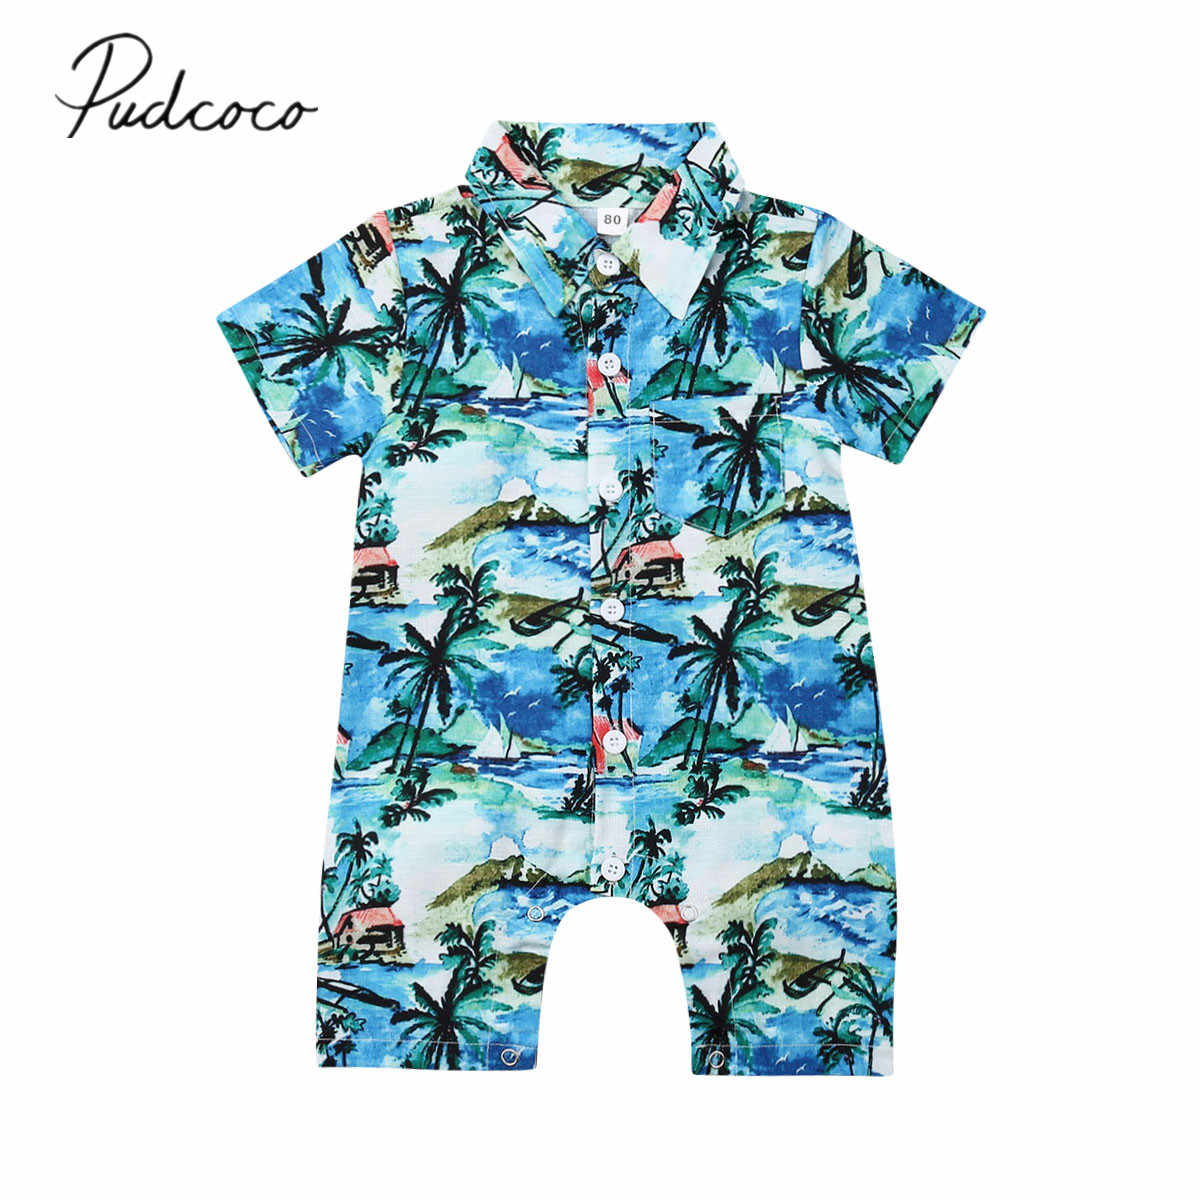 2019 Baby Summer Clothing Infant Baby Boy Romper Hawaii Jumpsuit Short Sleeve Romper Clothes Playsuits Outfit Beachwear 0-24M